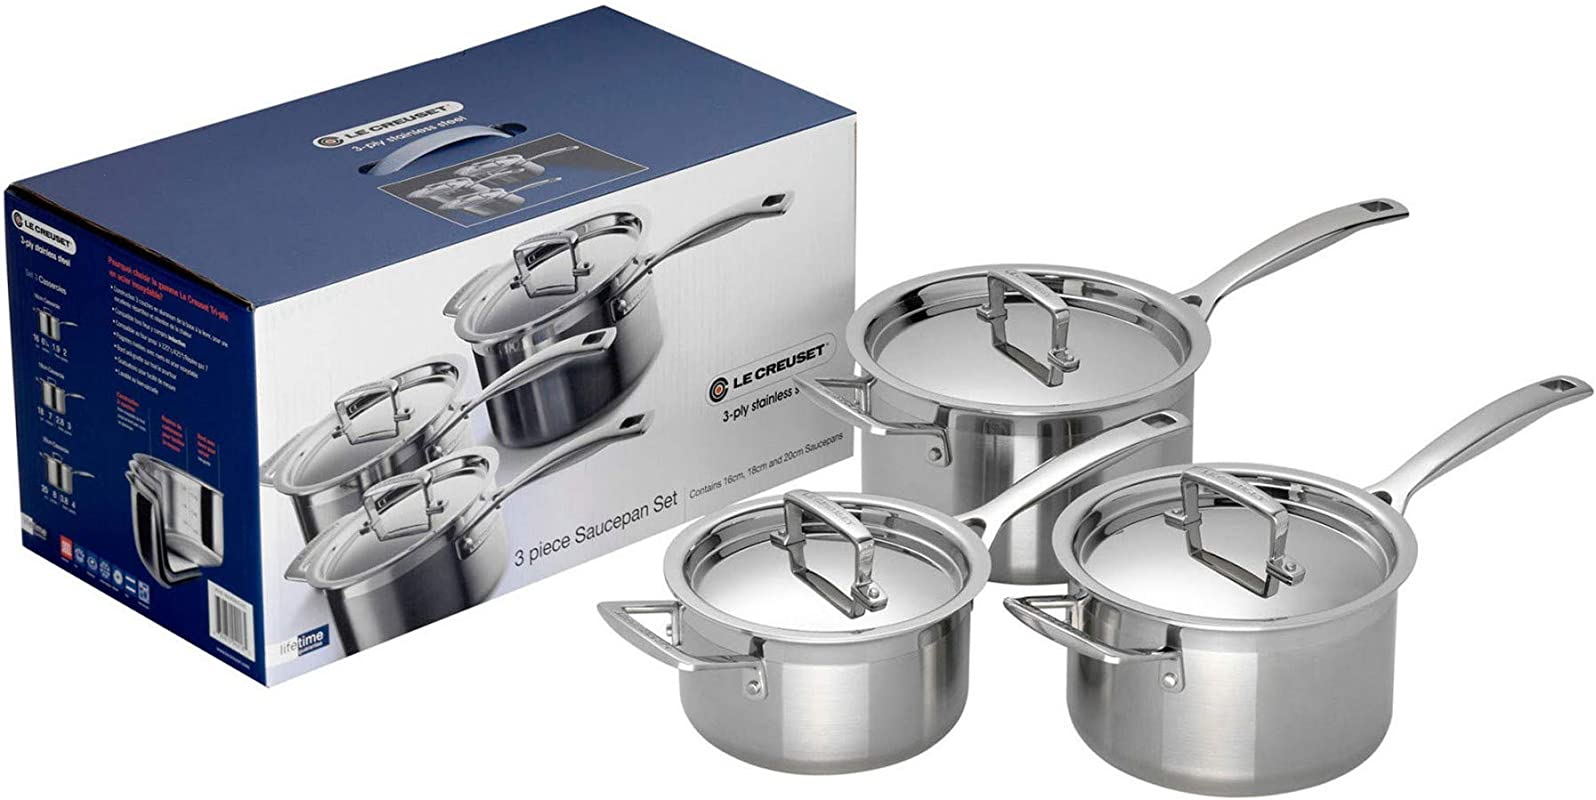 Le Creuset 3 Ply 3 Piece Set Stainless Steel